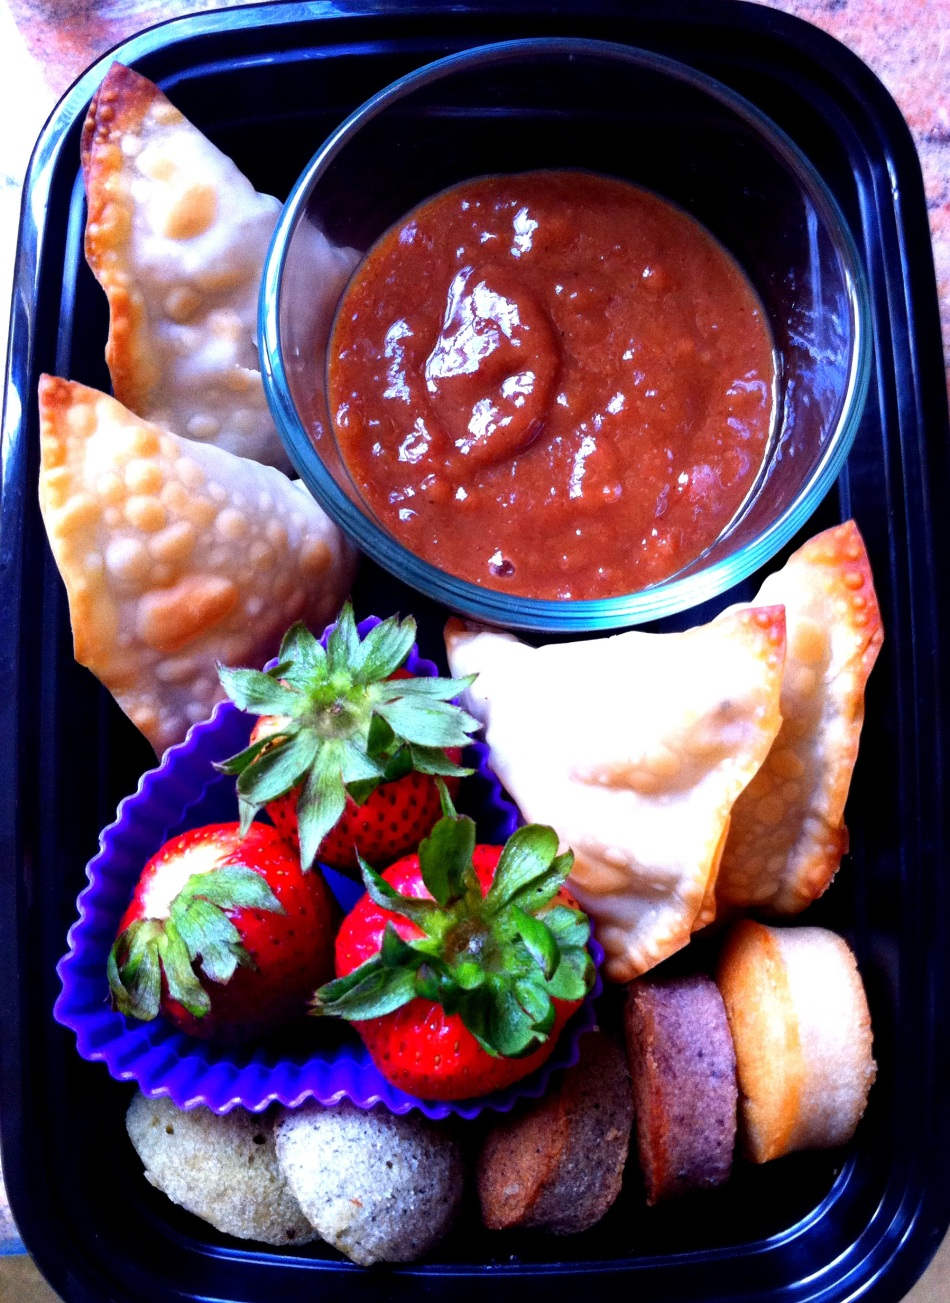 Potato and pea baked samosas with tamarind-date chutney, fresh strawberries and Asian-flavored financiers and madeleines by SweetMue.com.